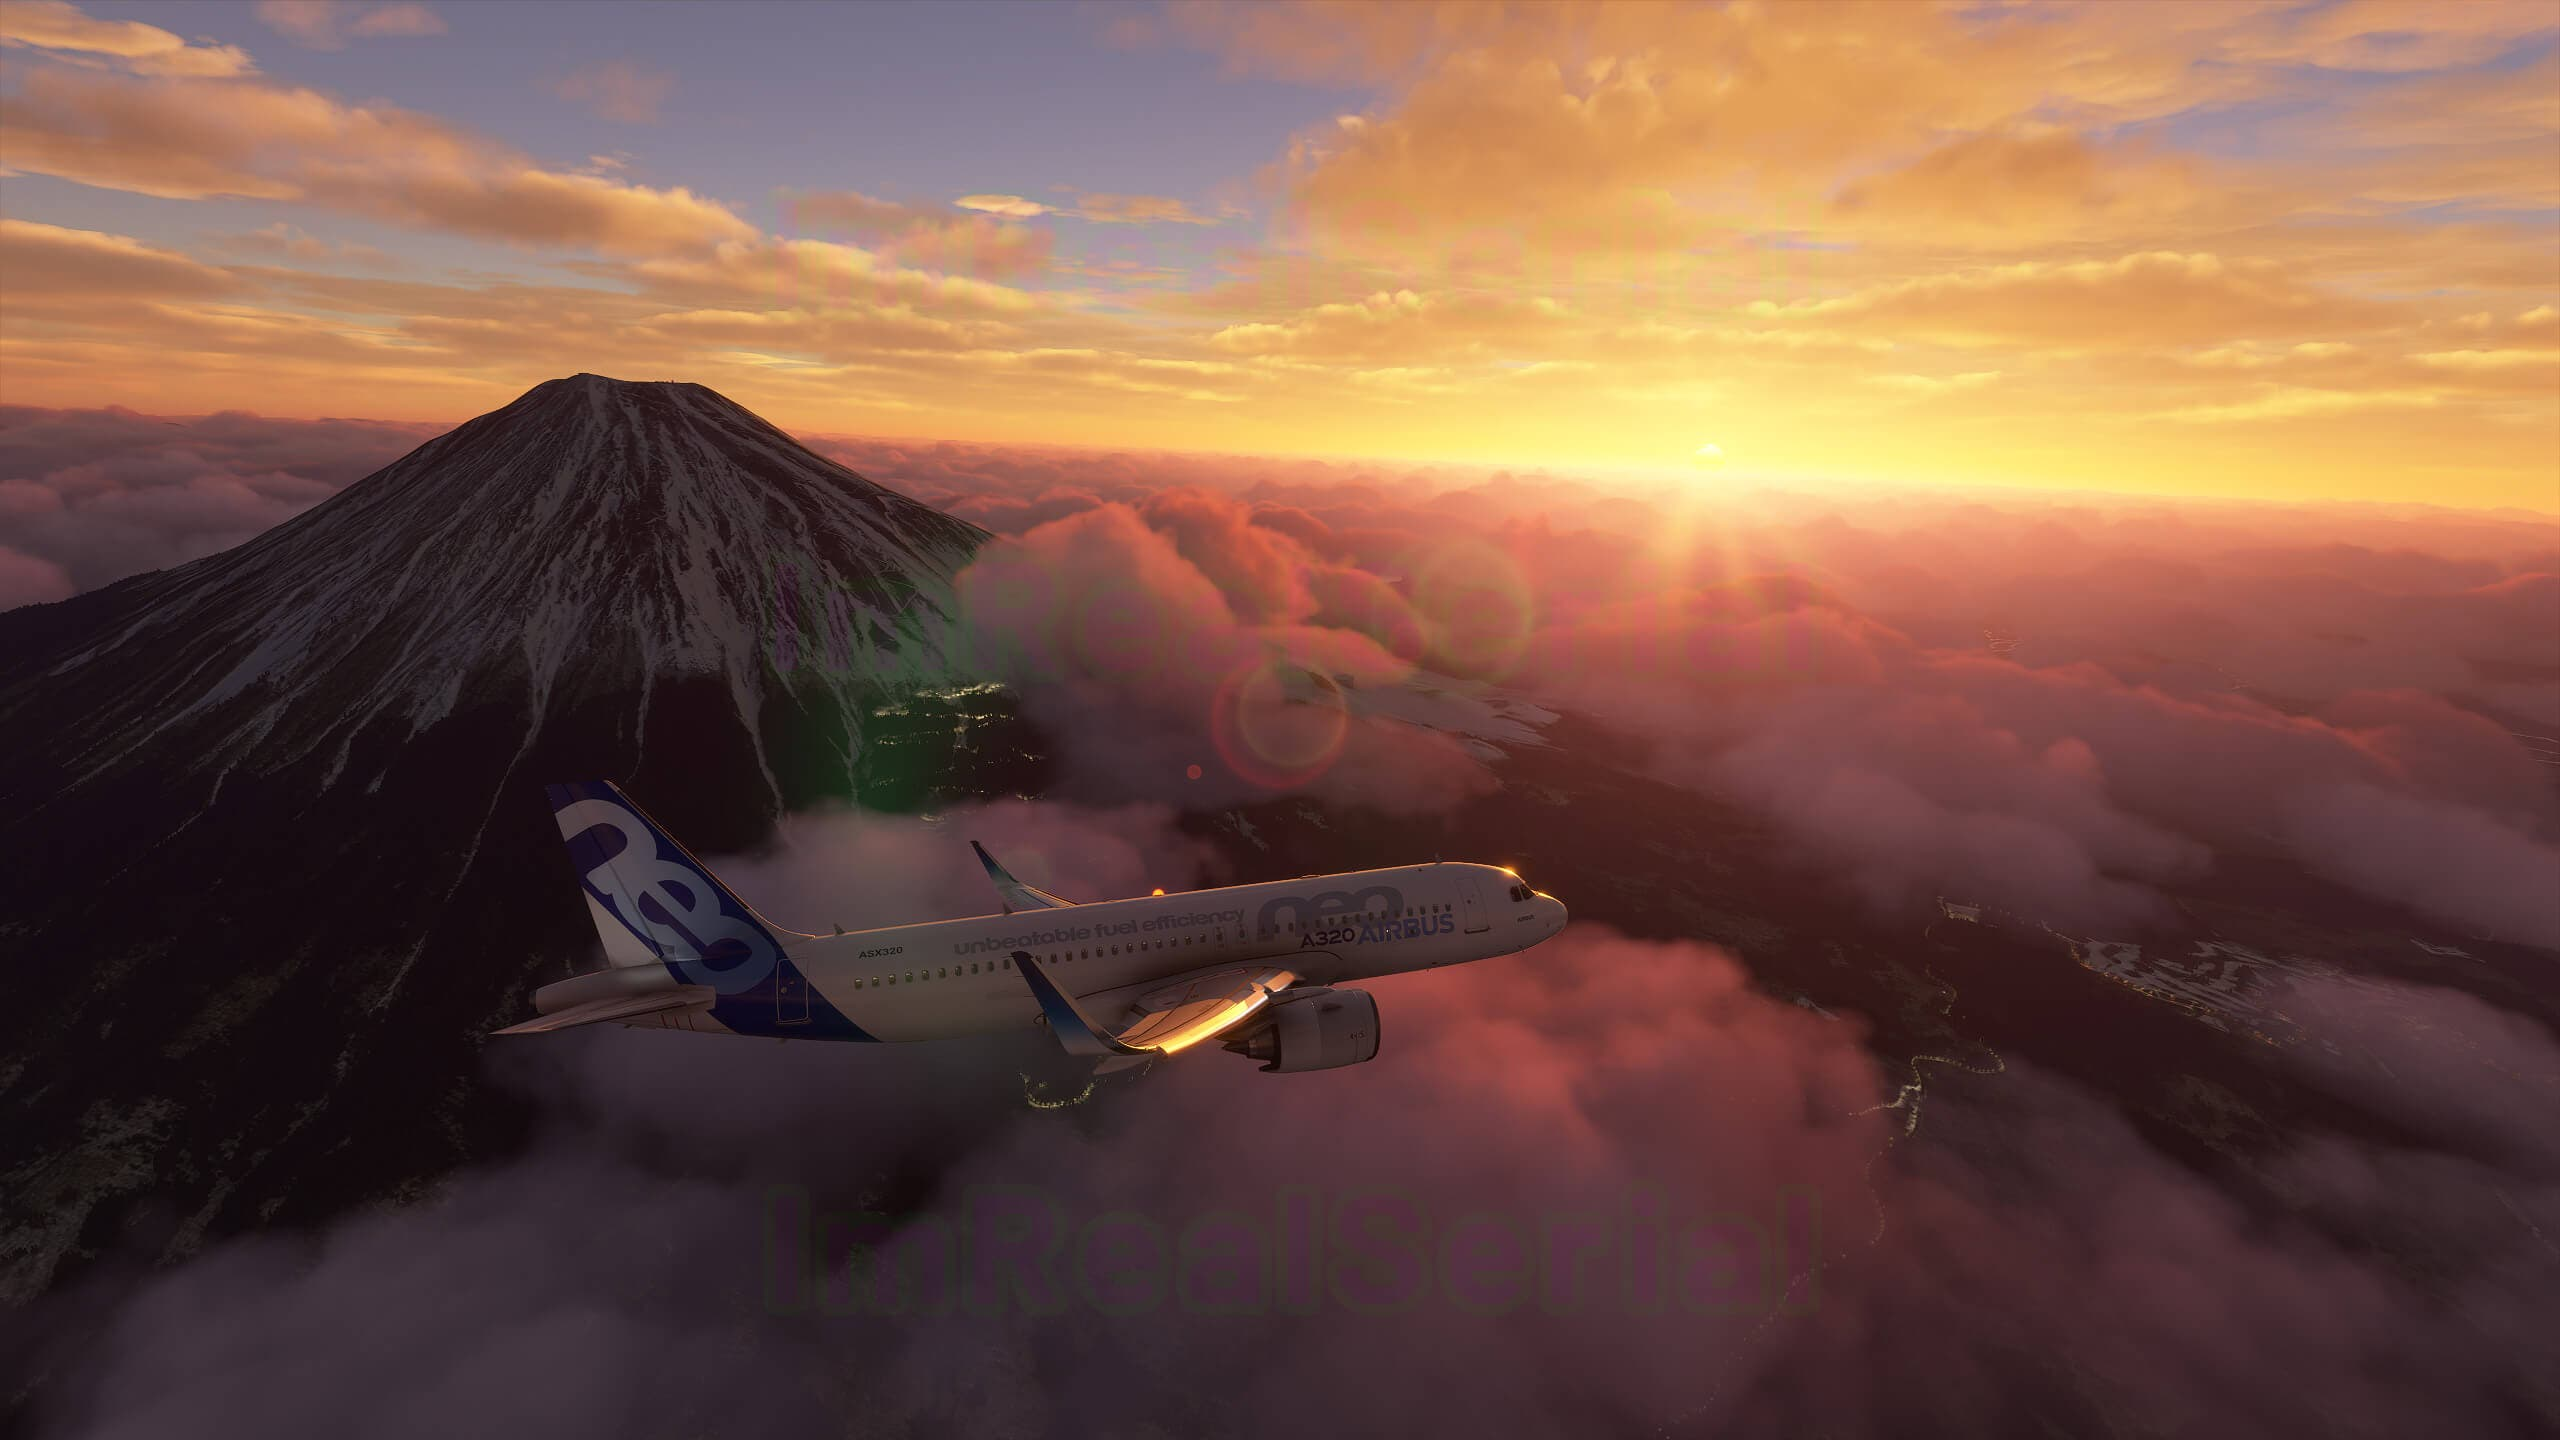 La beta cerrada de Microsoft Flight Simulator apunta al actual mes de julio 2